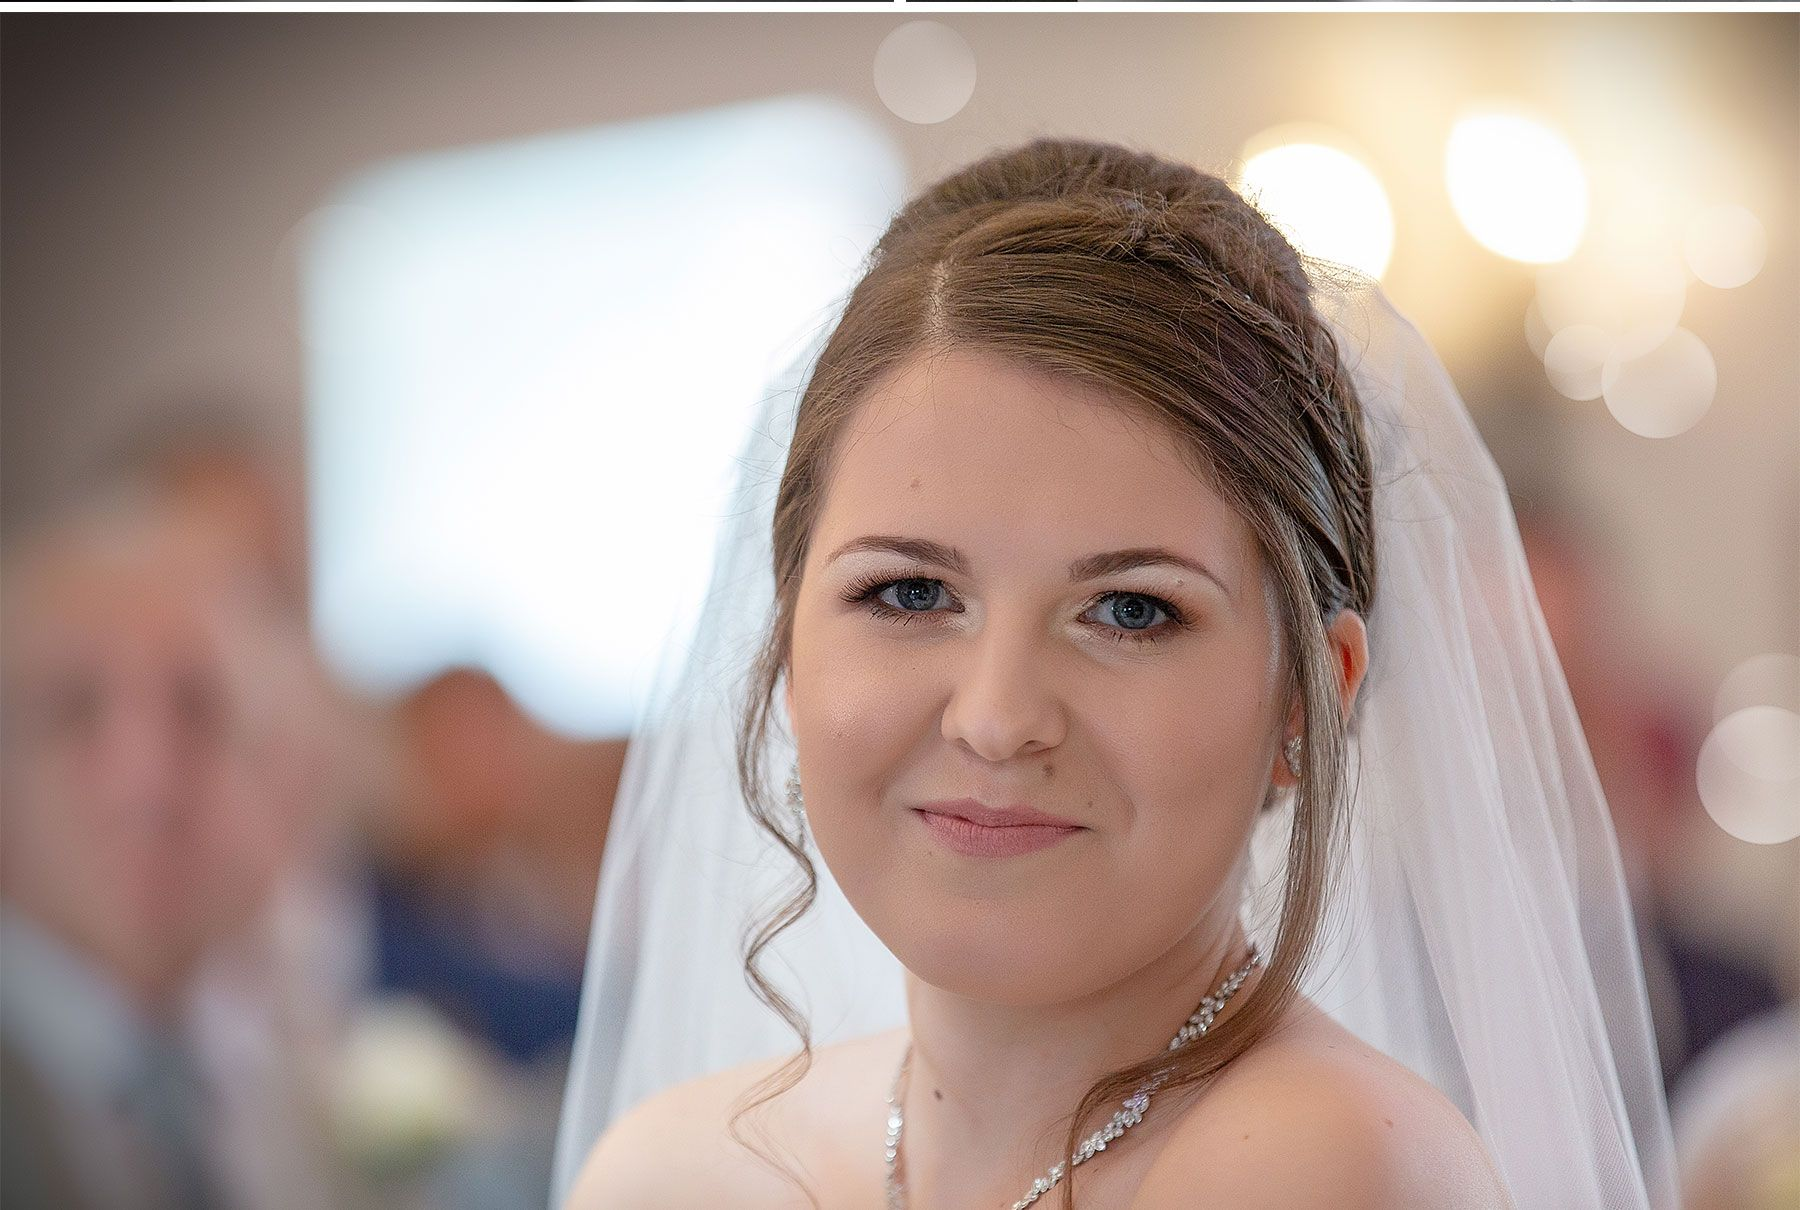 the bride glances at the camera